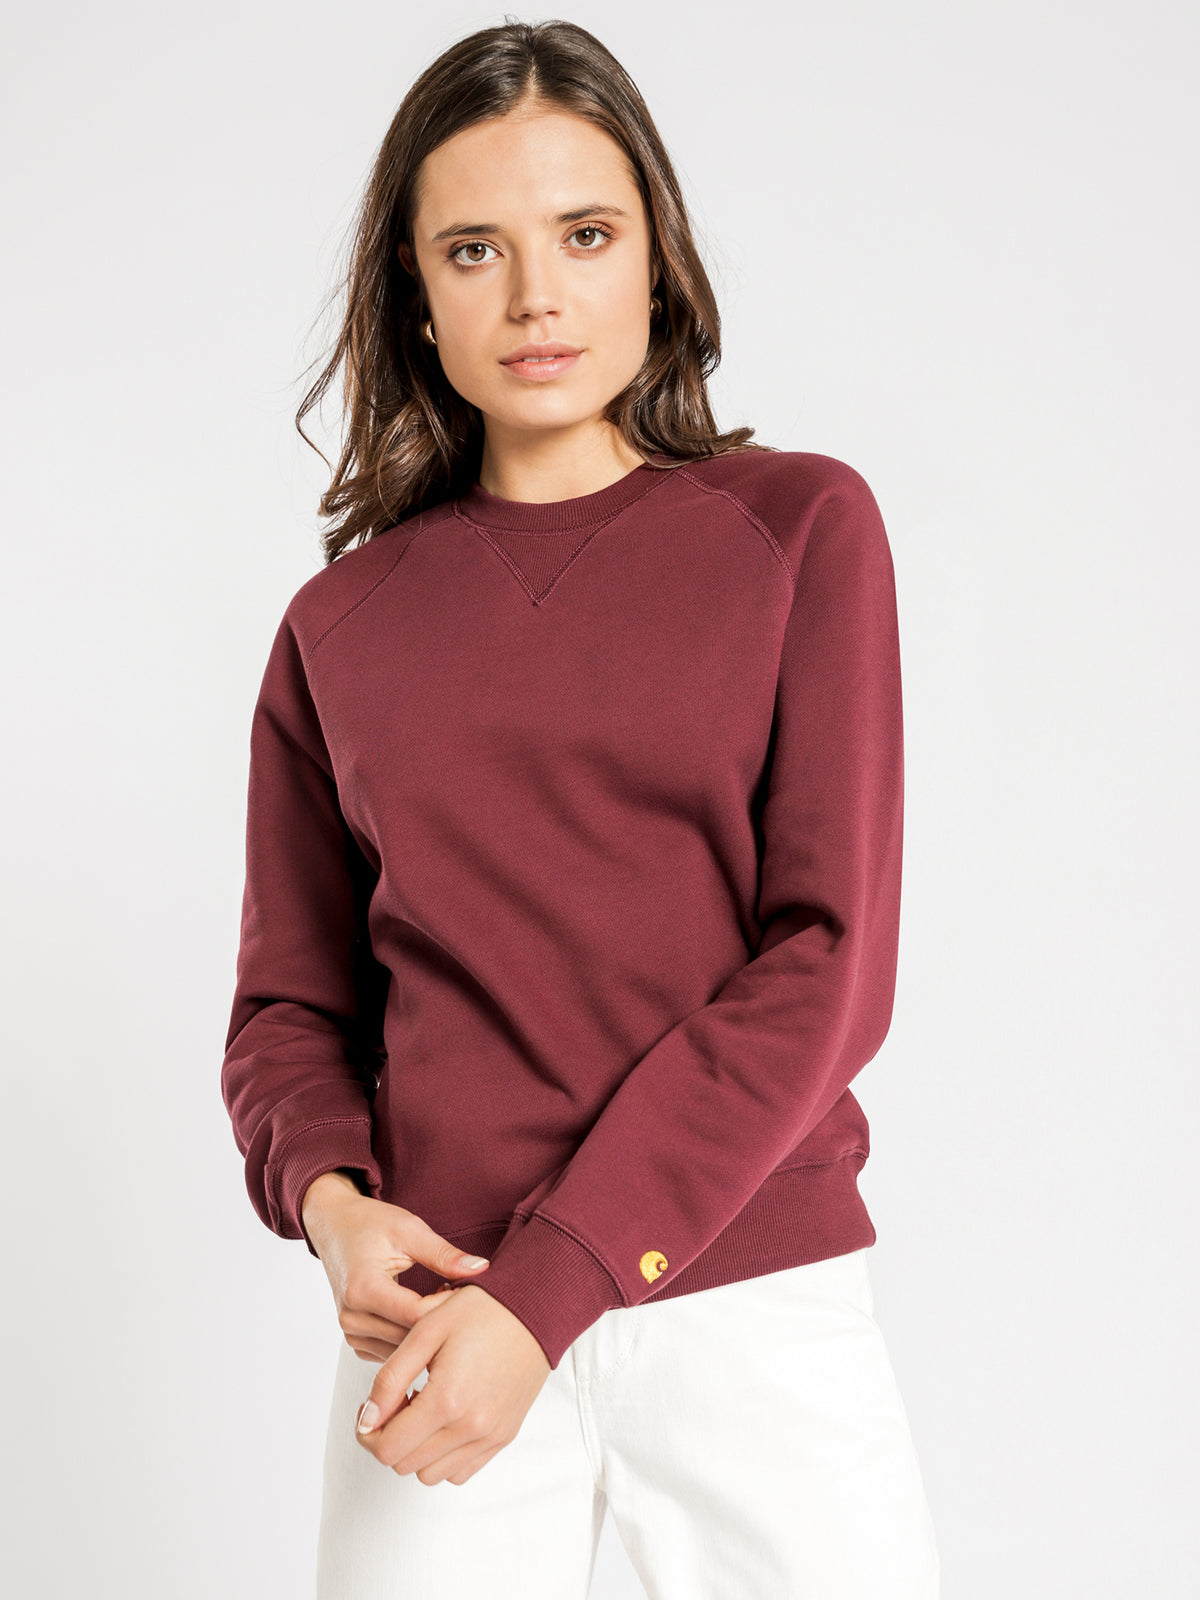 Chasy Sweatshirt in Shiraz